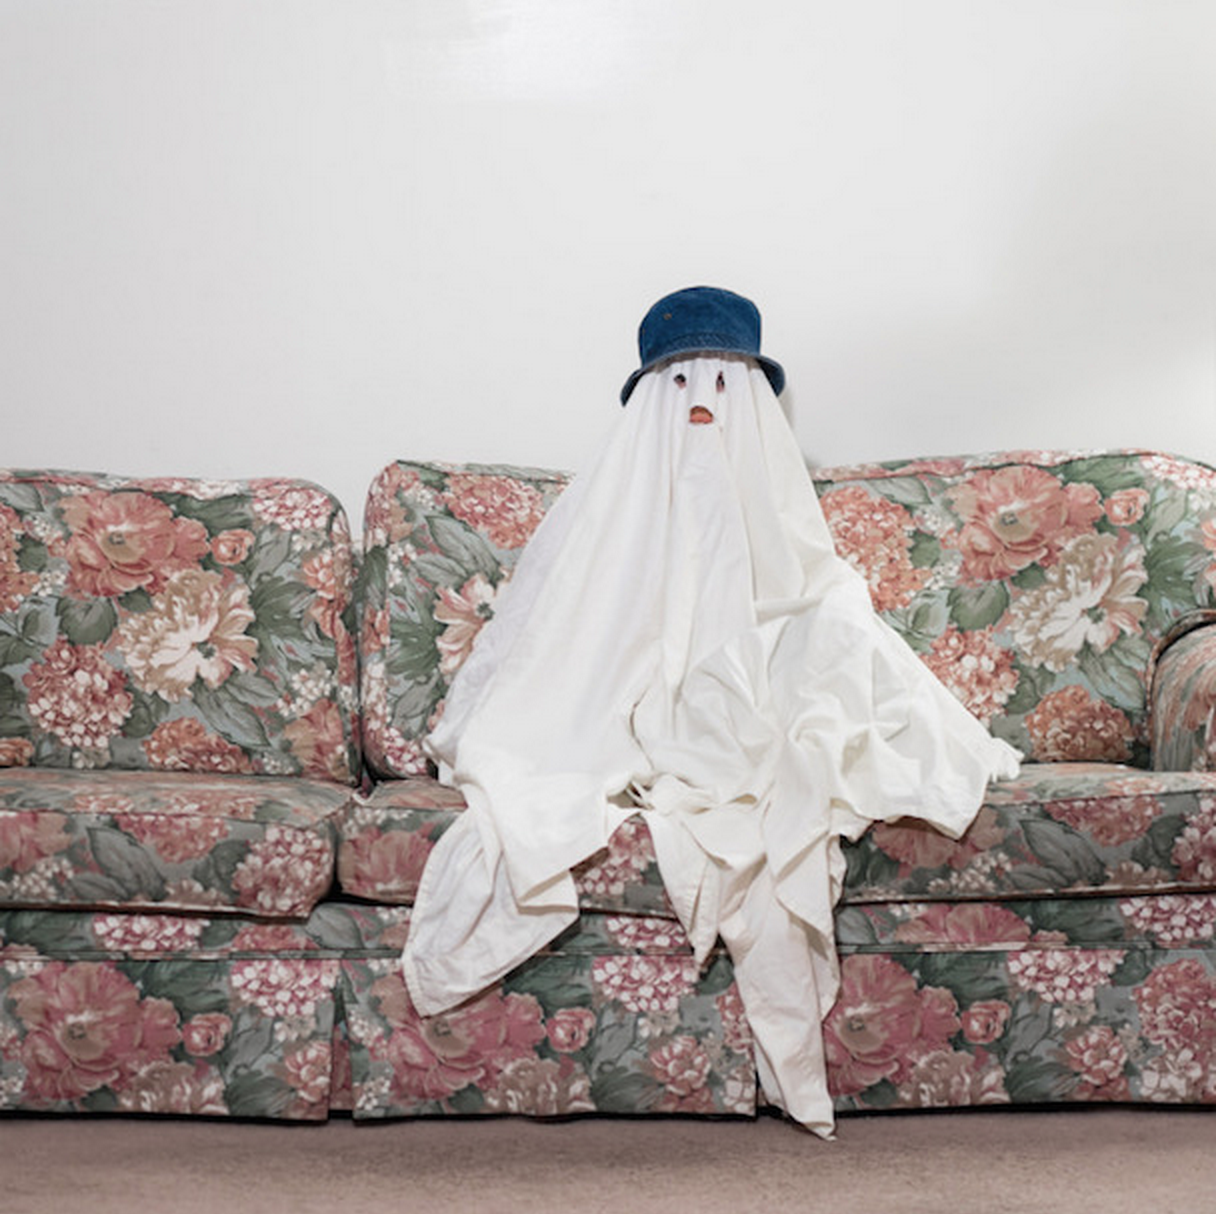 Chastity Belt – Time To Go Home